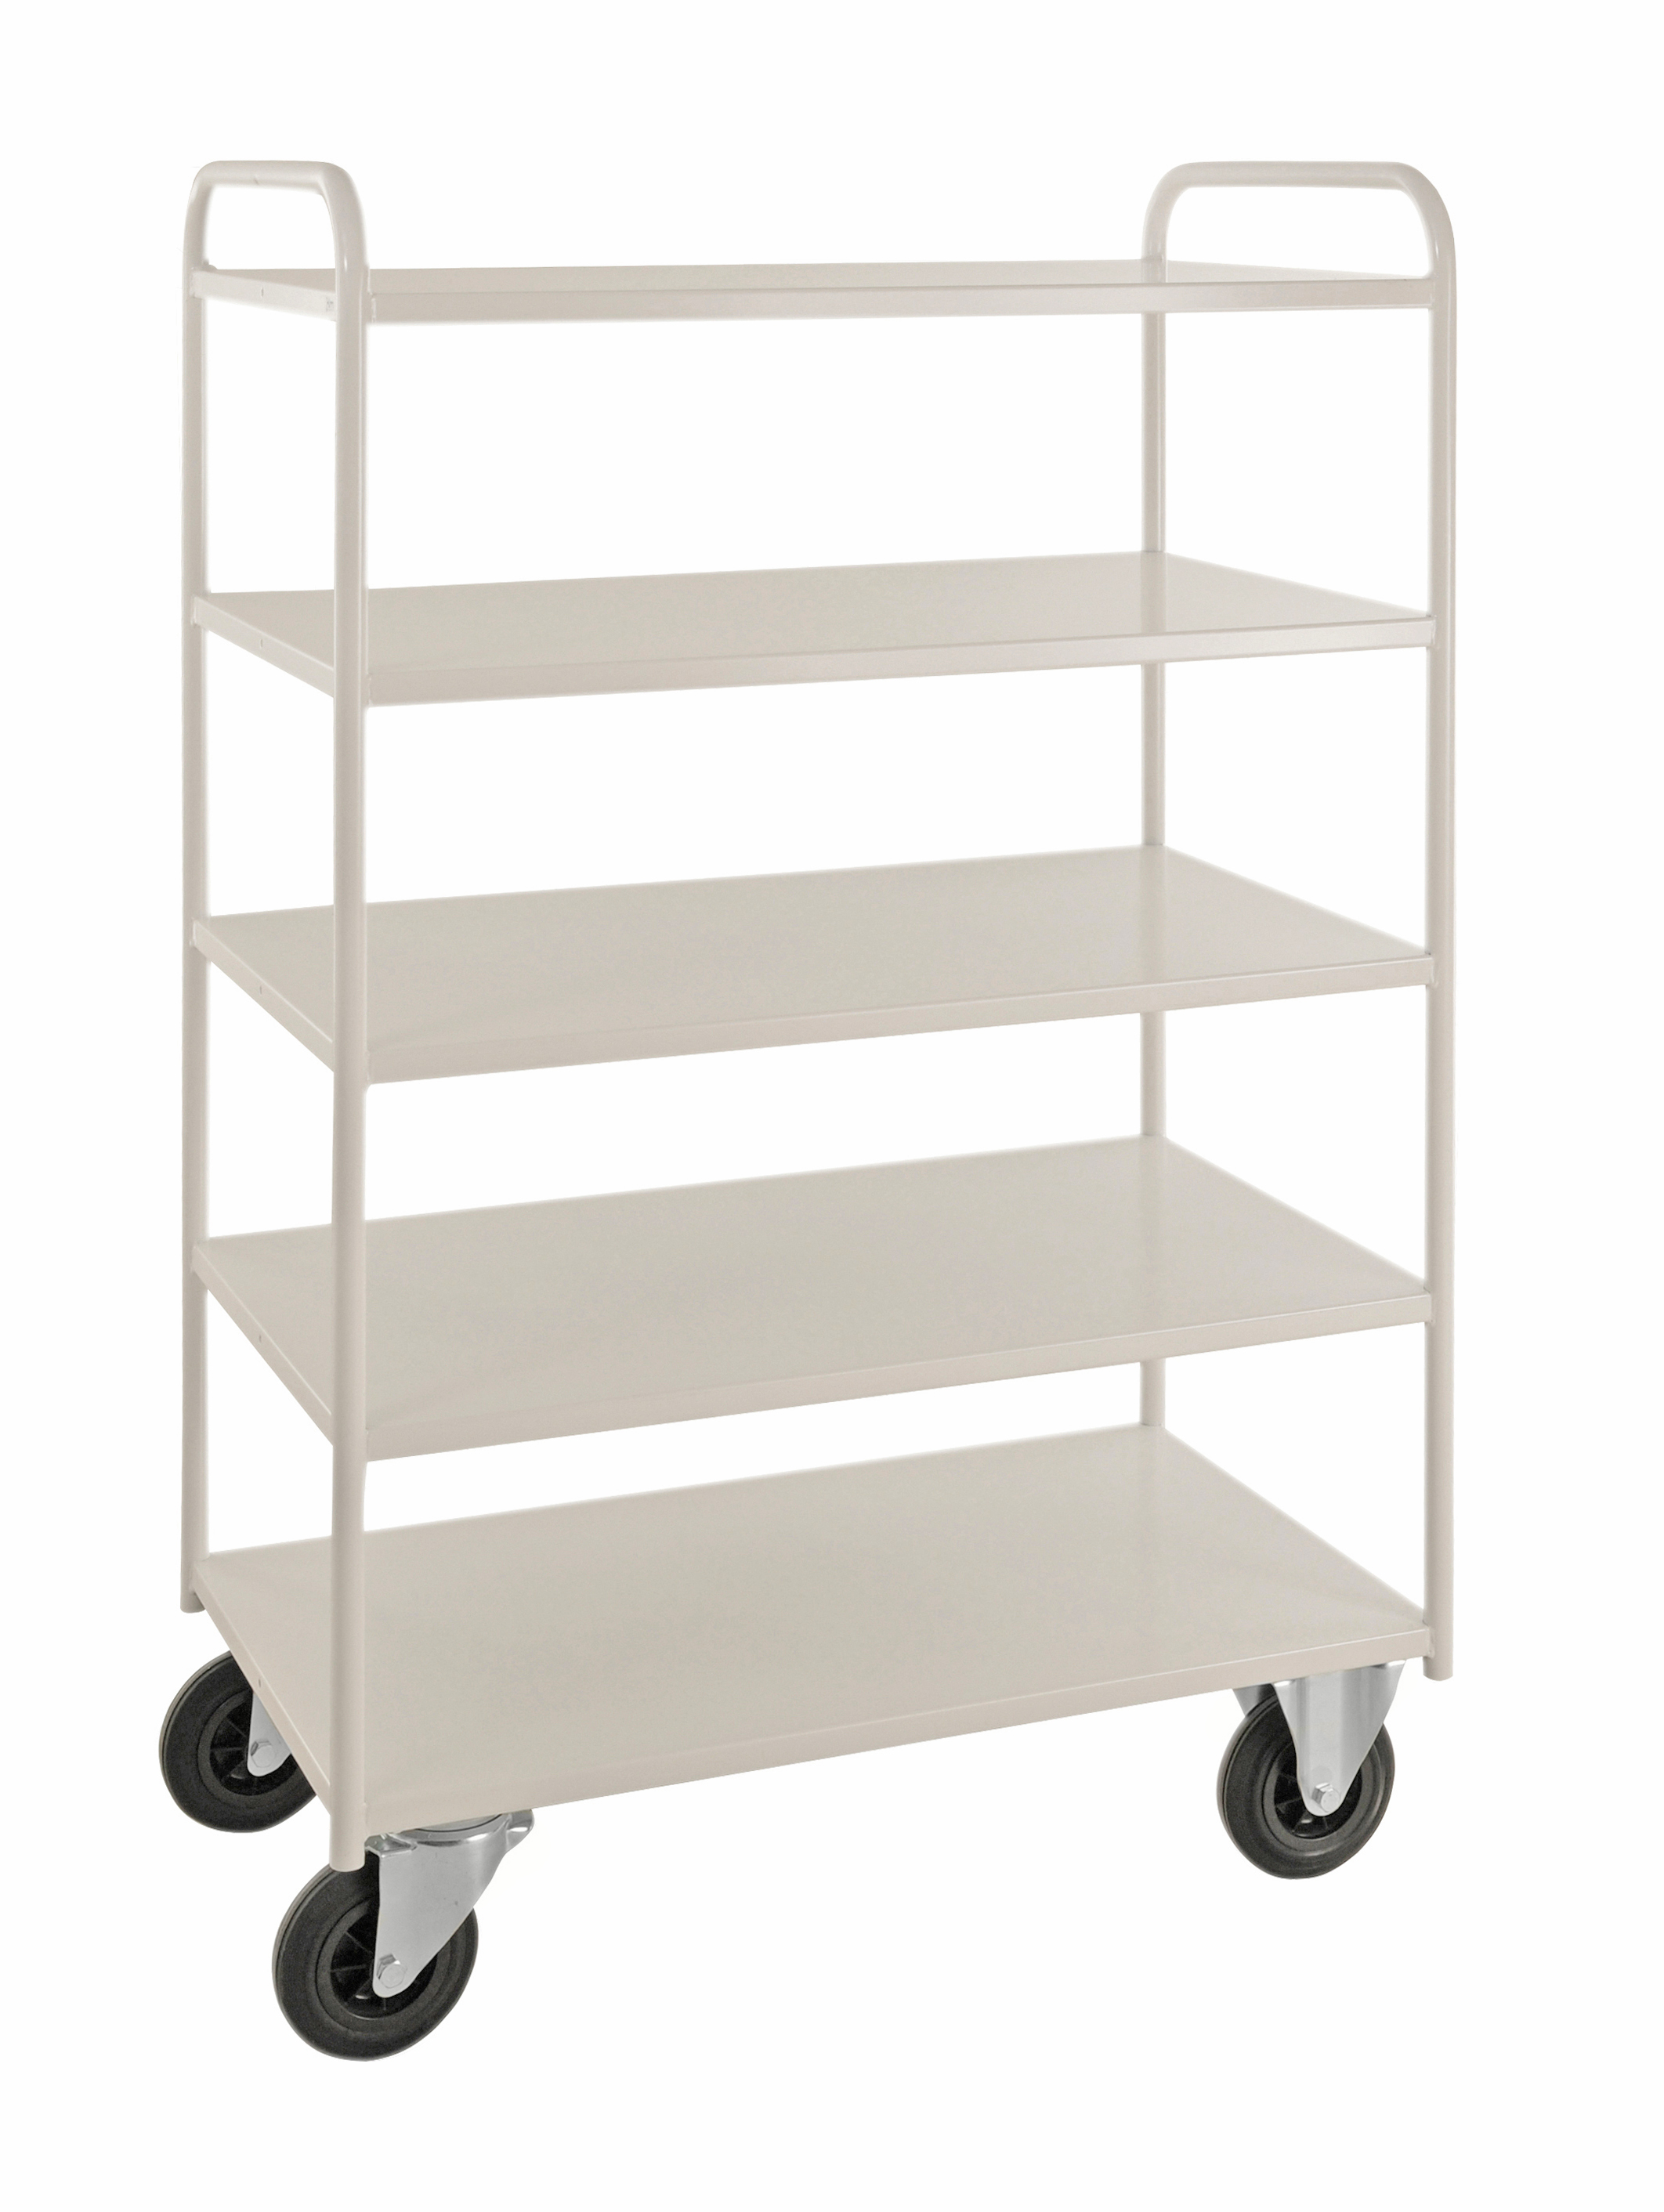 KM4145 | Shelf trolley 5 levels, fully welded